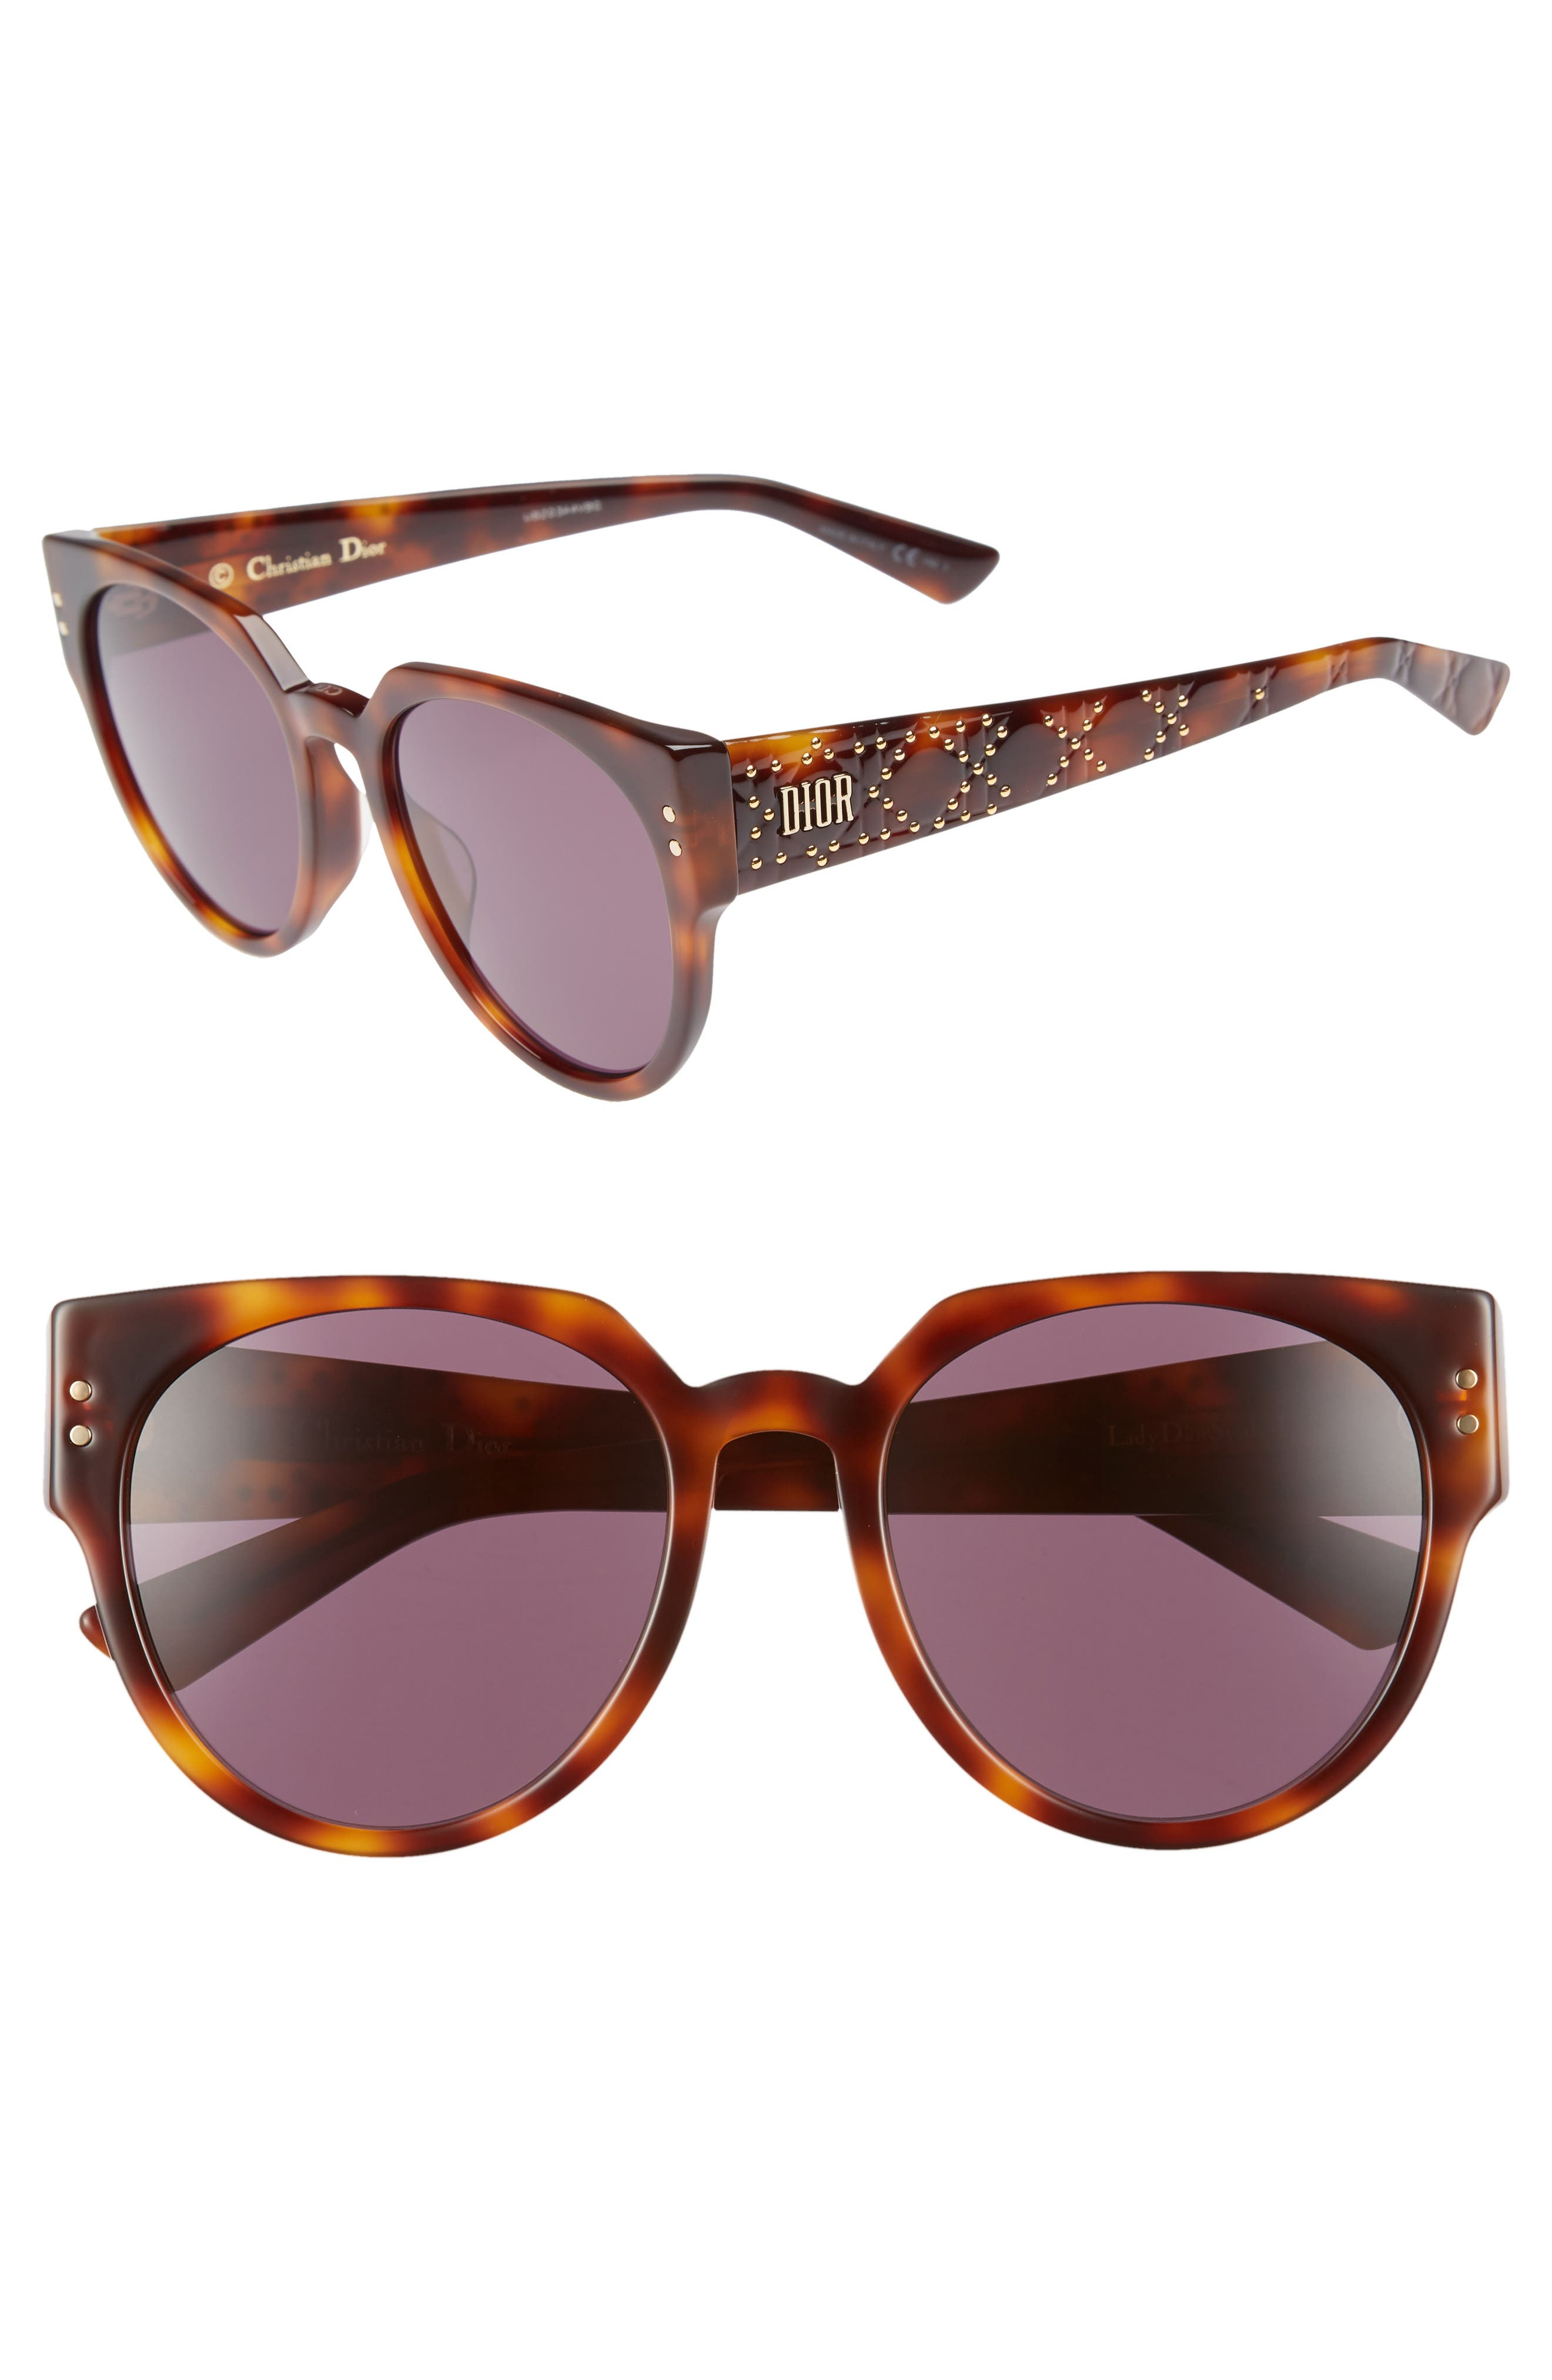 Lady Dior 54mm Special Fit Polarized Cat Eye Sunglasses,                             Main thumbnail 1, color,                             DARK HAVANA